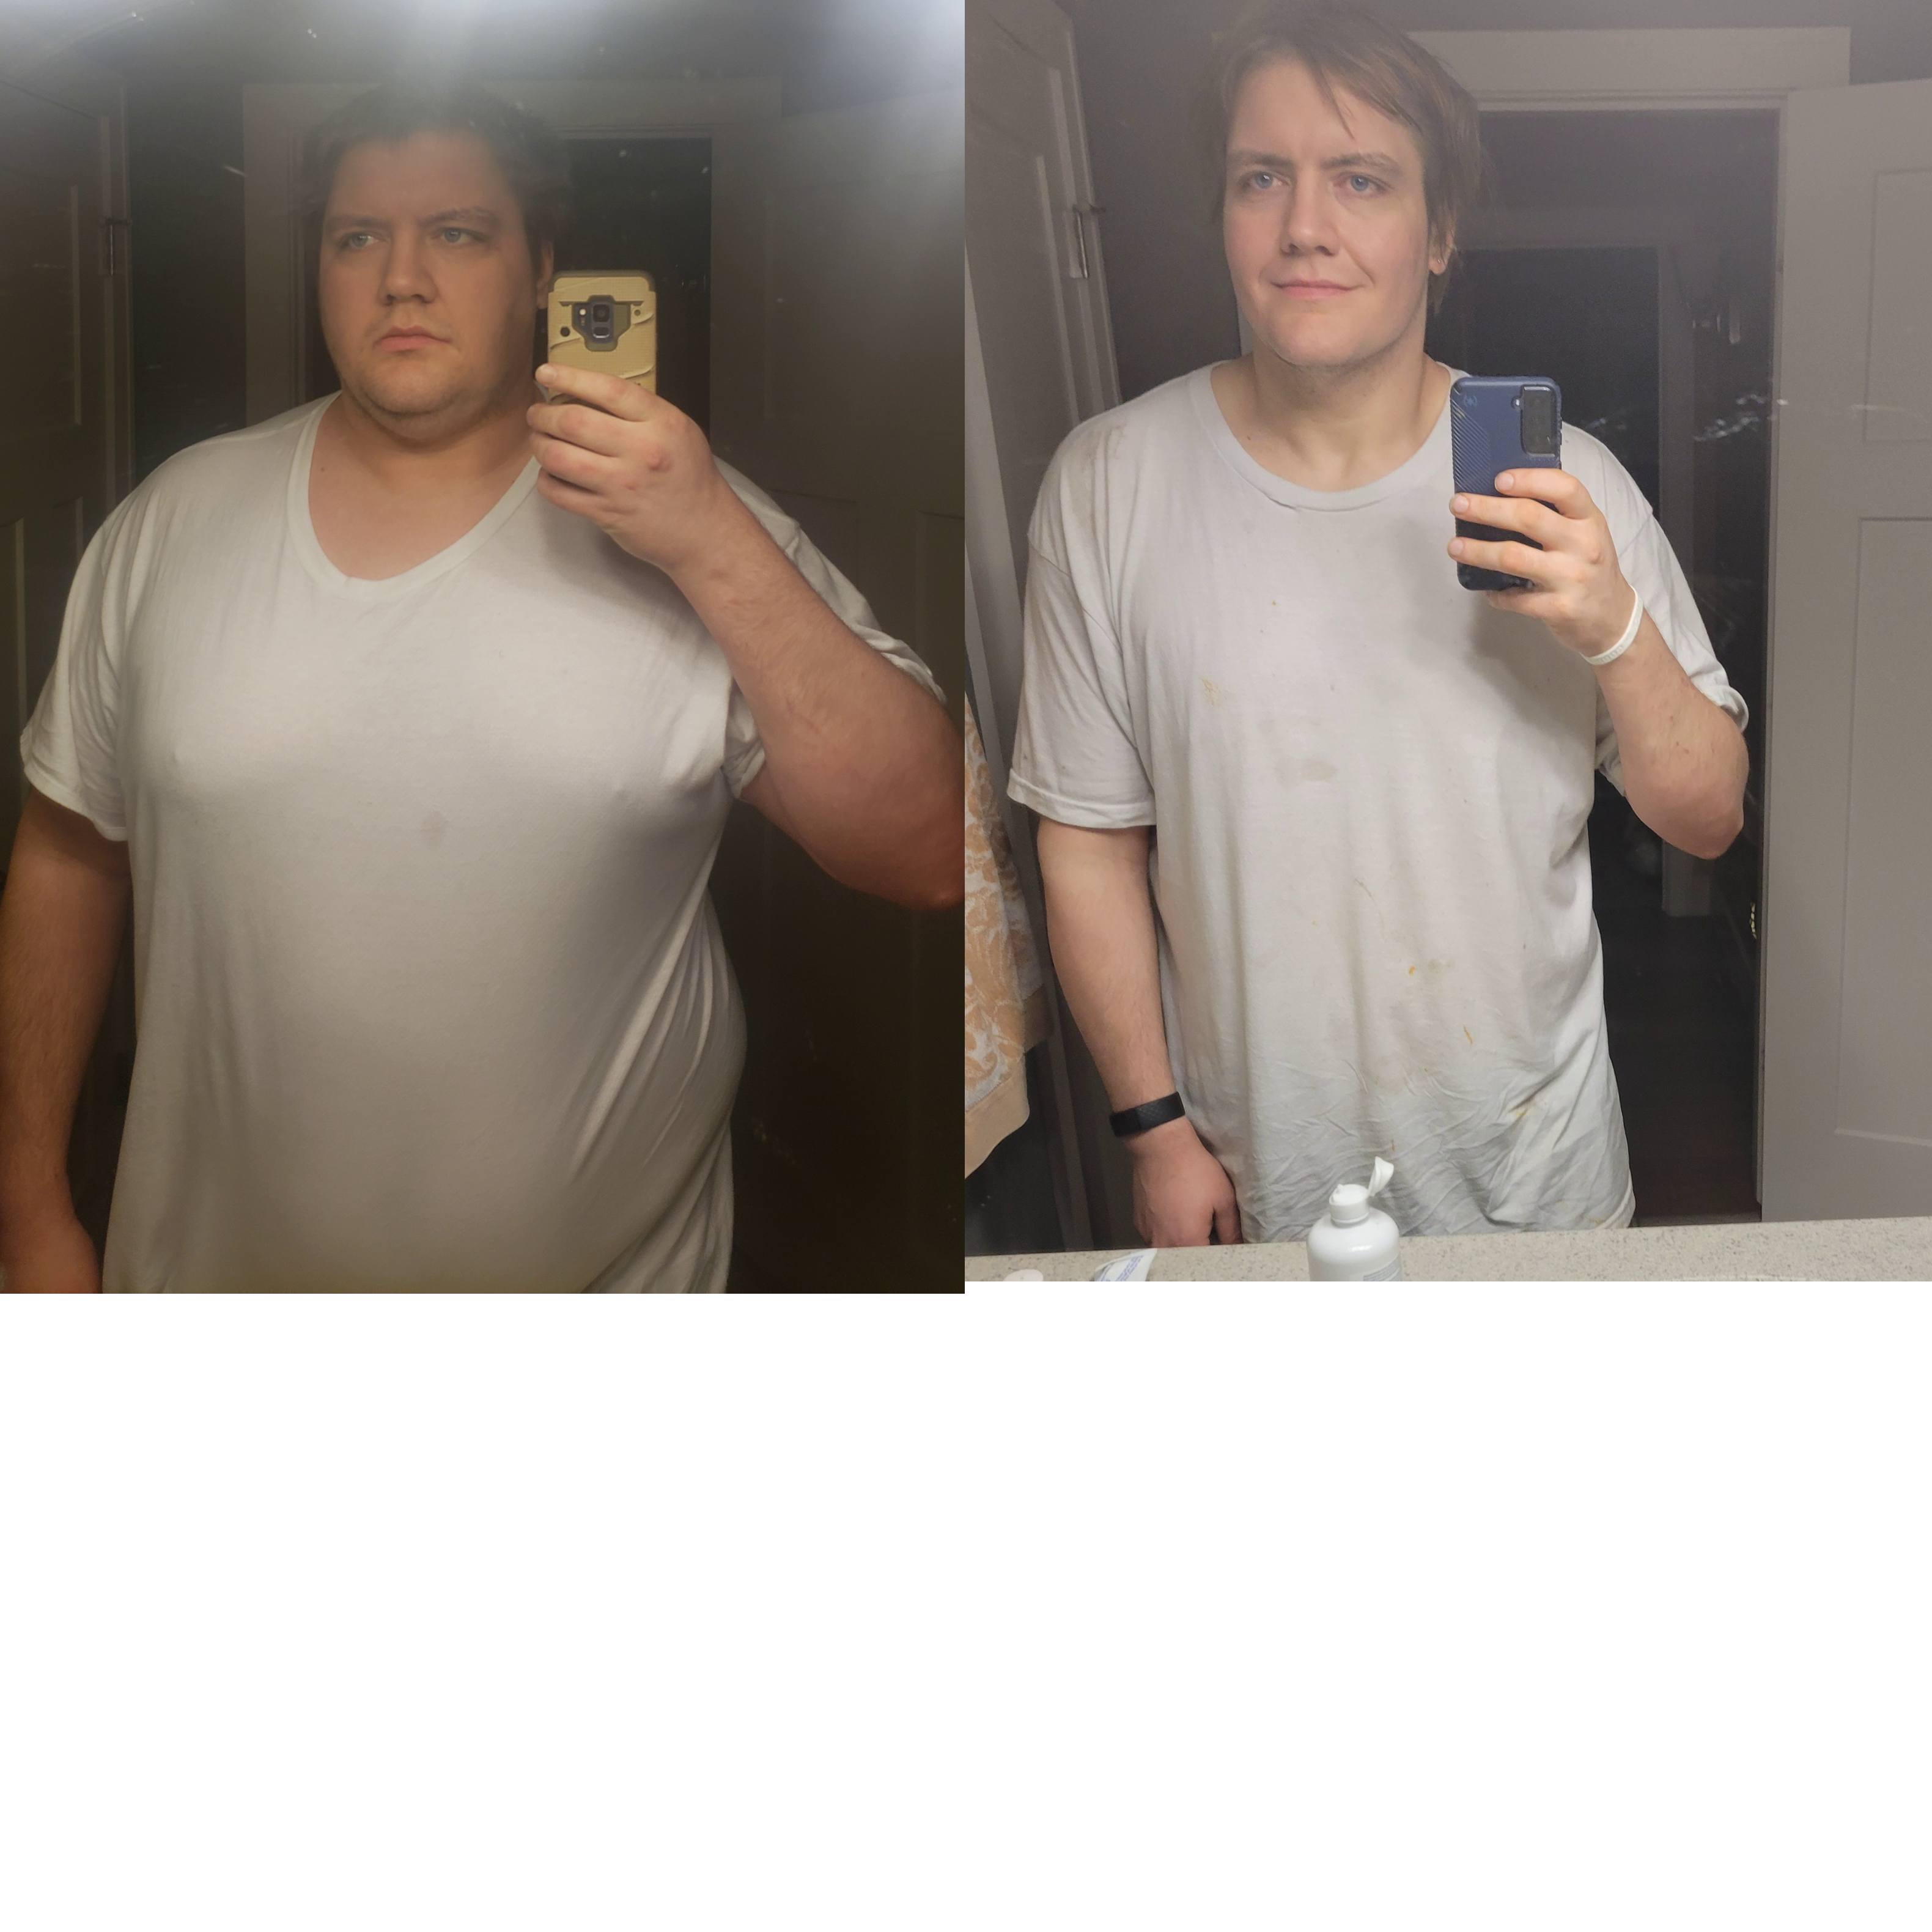 6'2 Male 123 lbs Fat Loss Before and After 358 lbs to 235 lbs